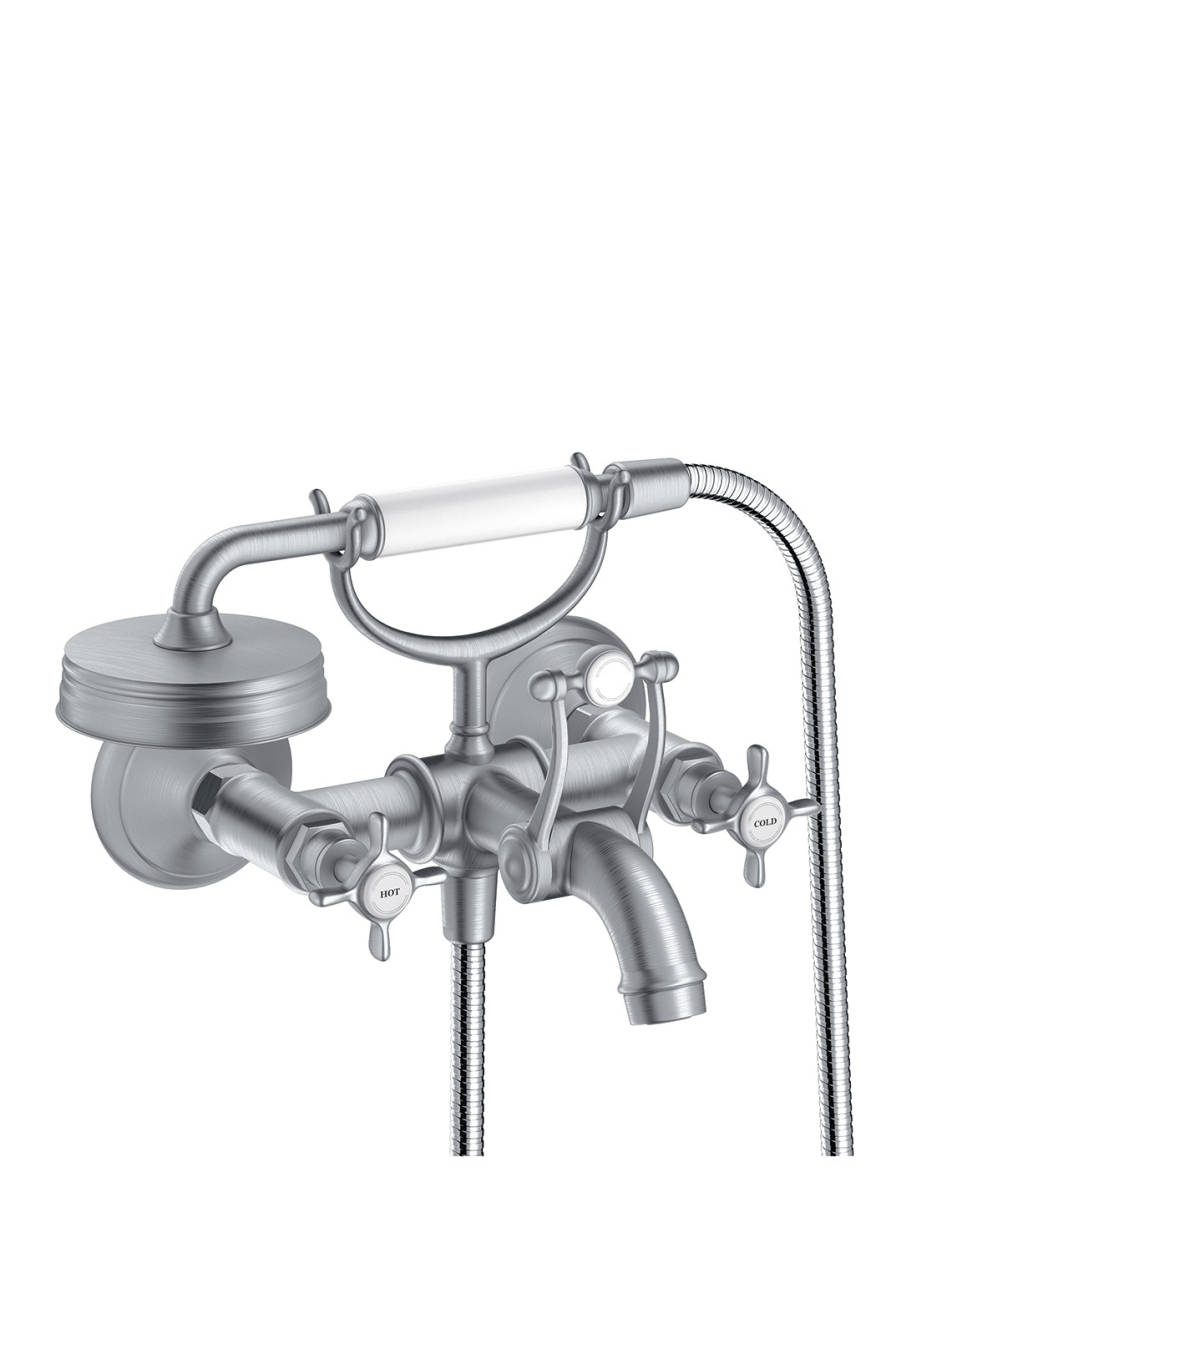 2-handle bath mixer for exposed installation with cross handles, Brushed Chrome, 16540260